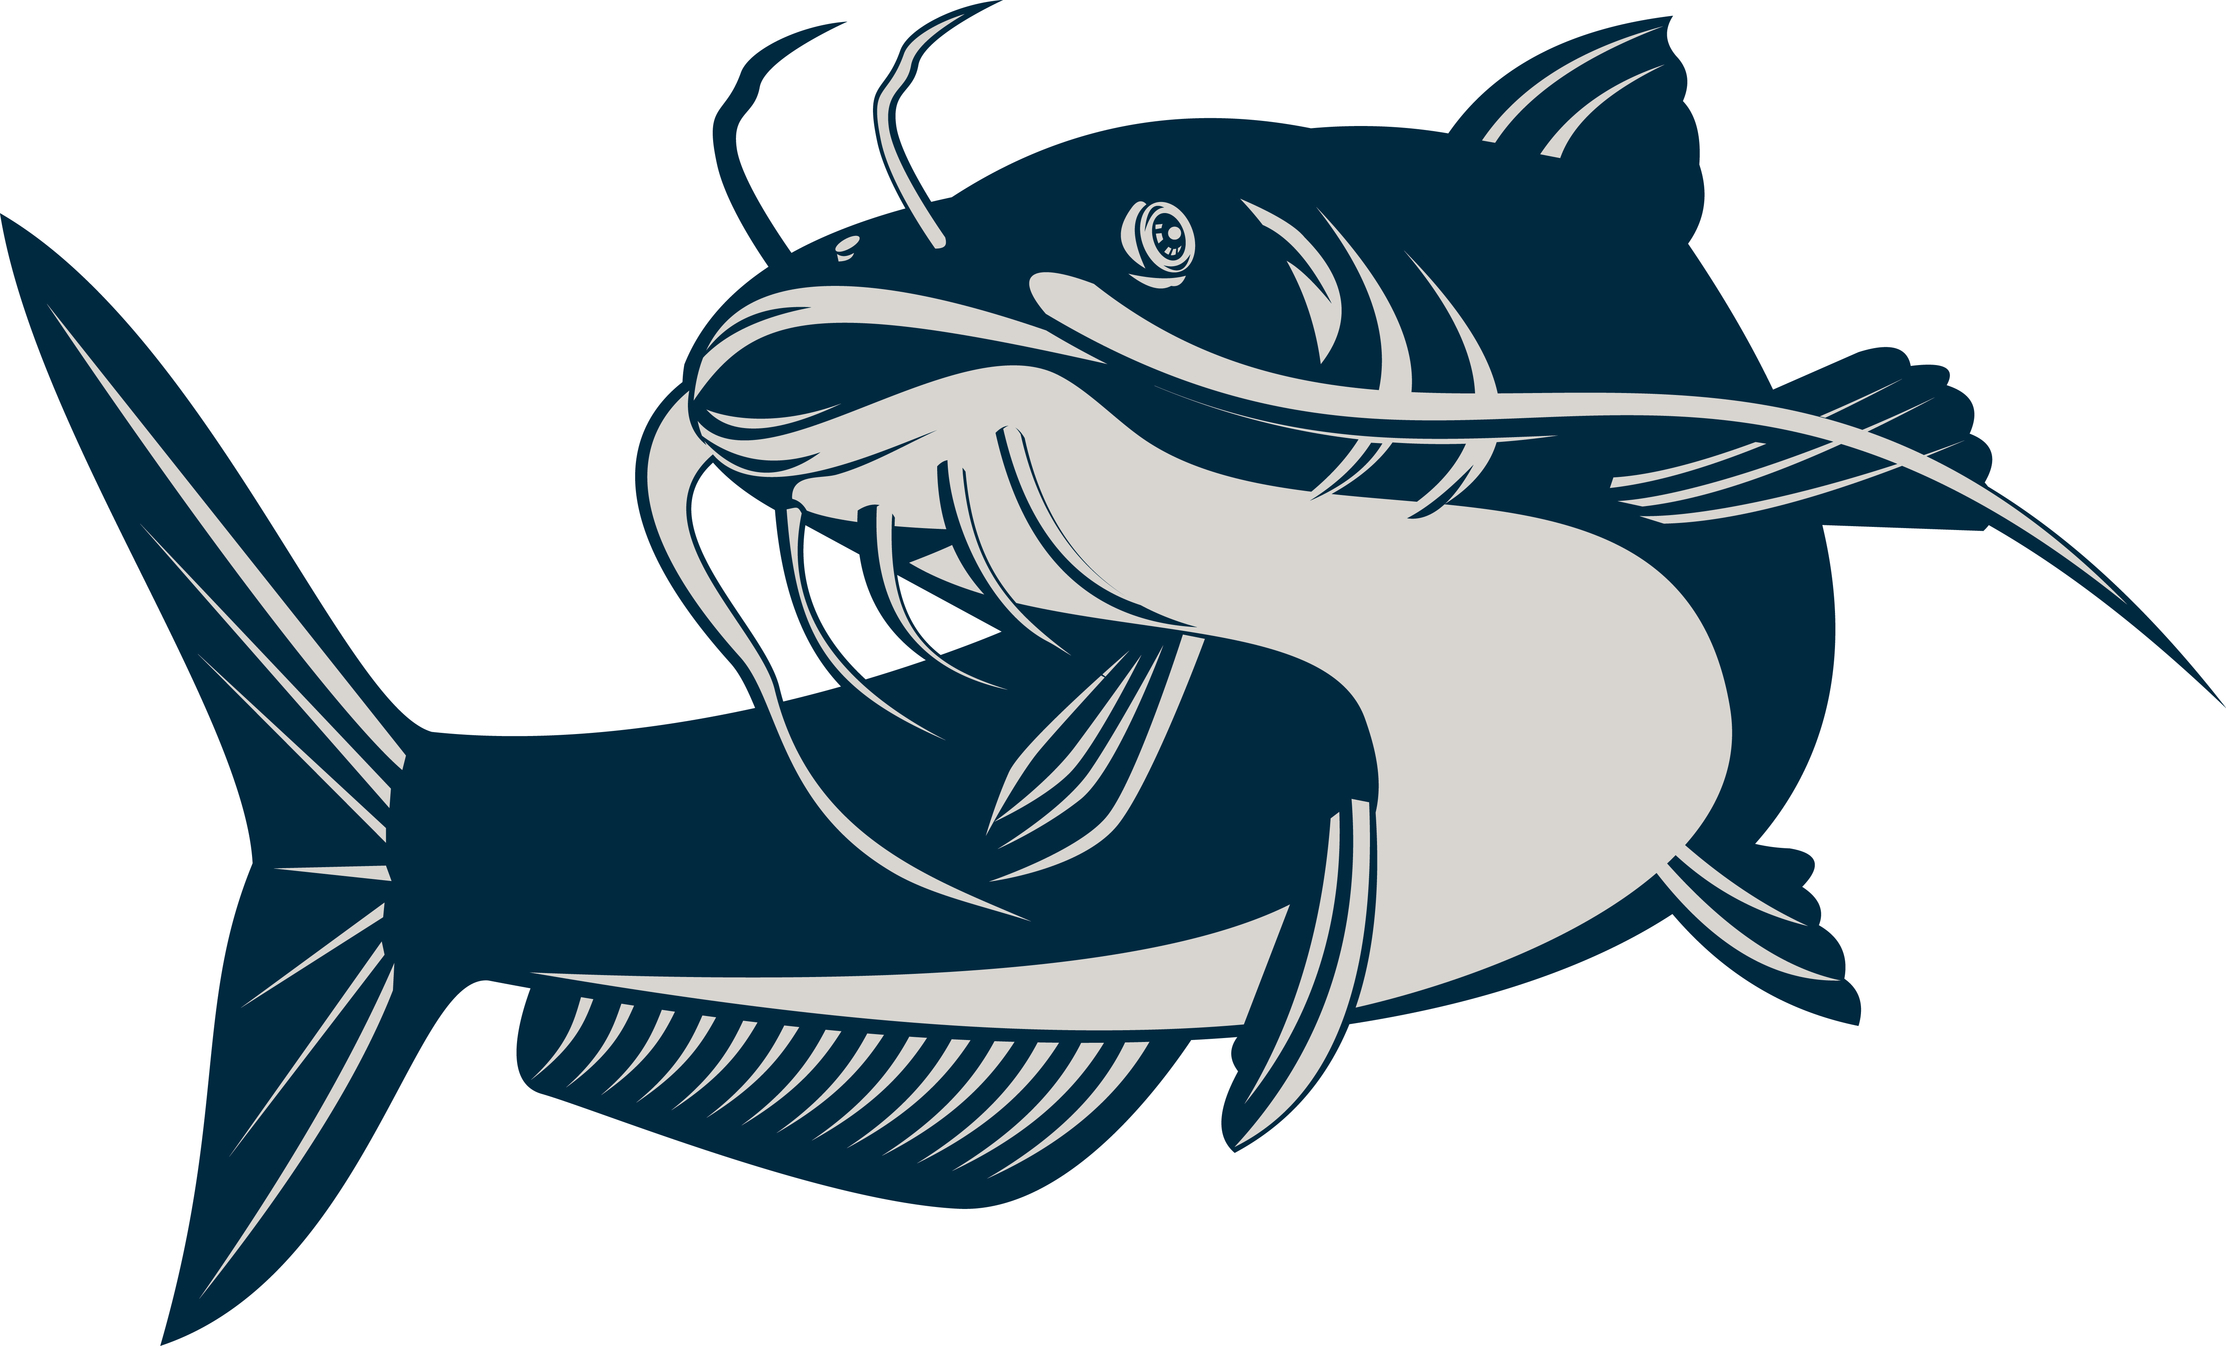 269 Catfish free clipart.